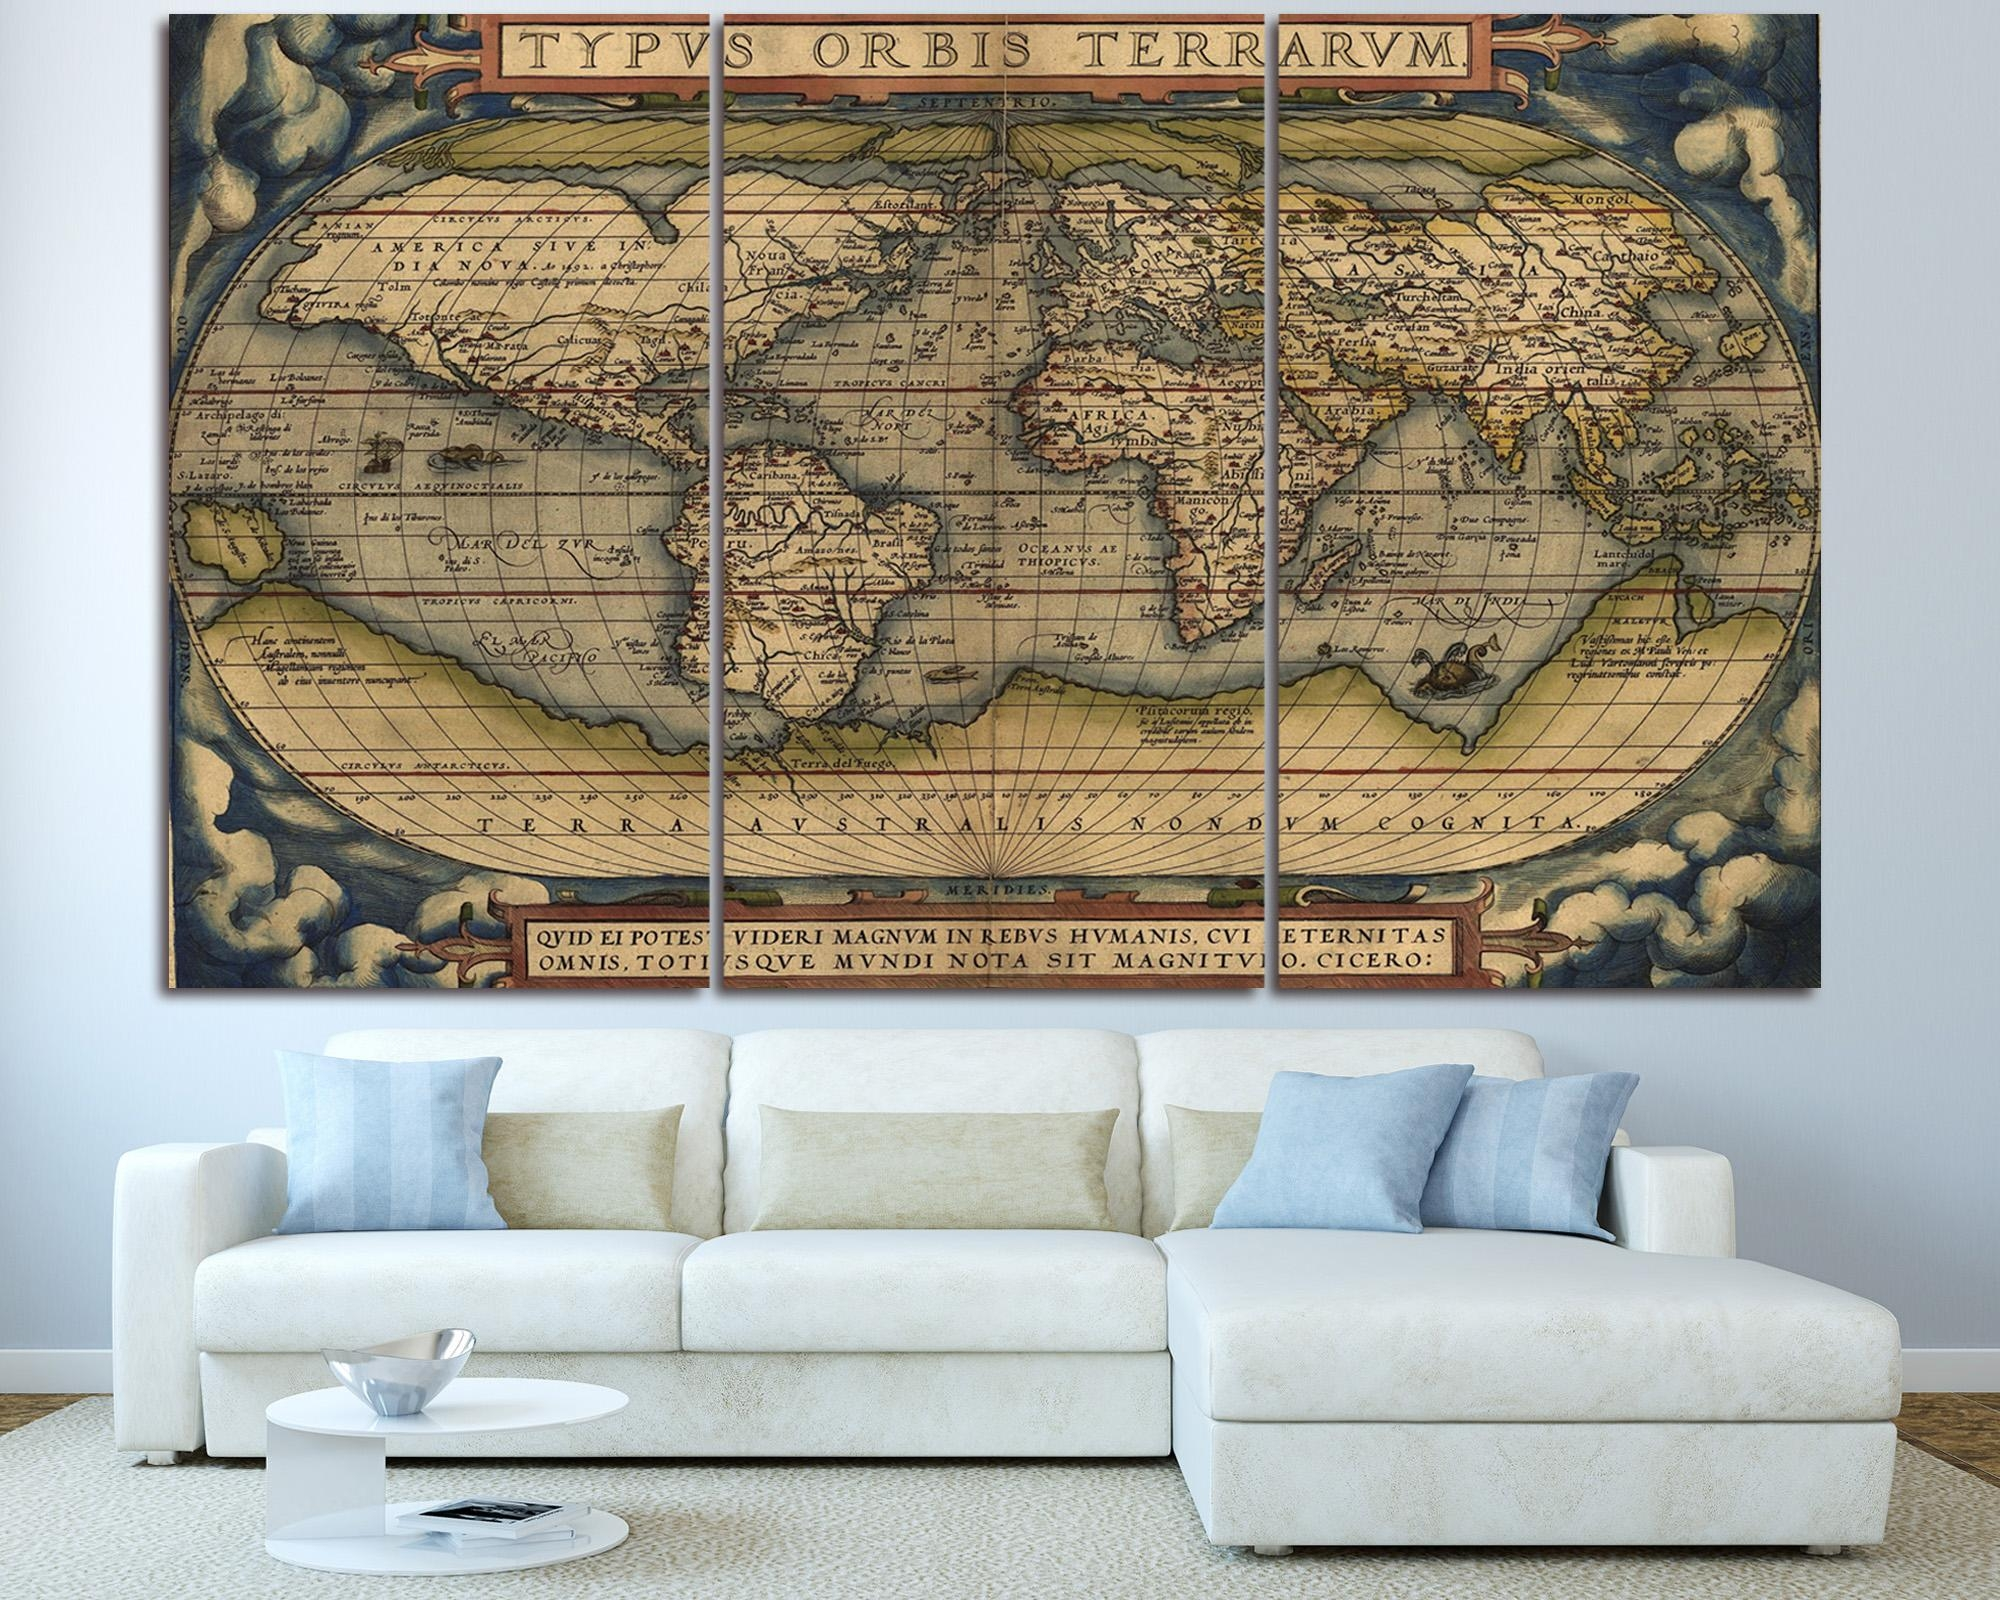 Texelprintart Studio – Canvas Wall Art Print For Home Decoration Intended For Large Vintage Wall Art (View 5 of 20)